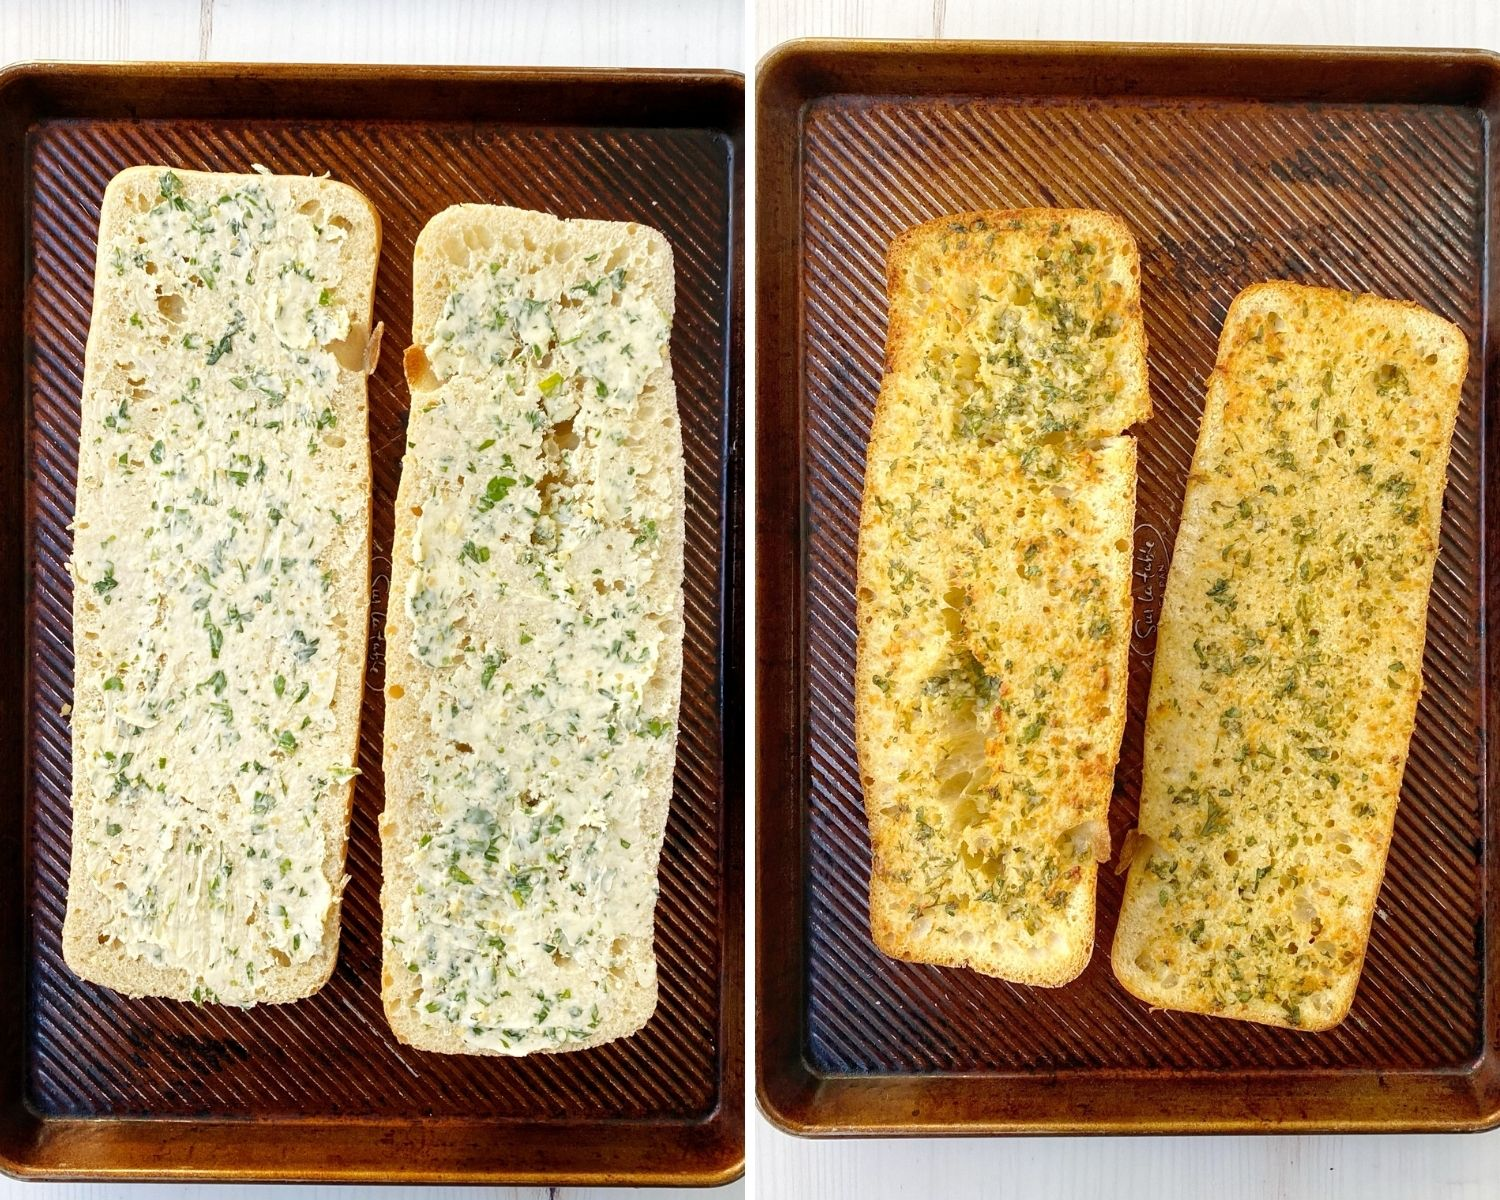 bread with butter garlic spread on left and baked bread on right